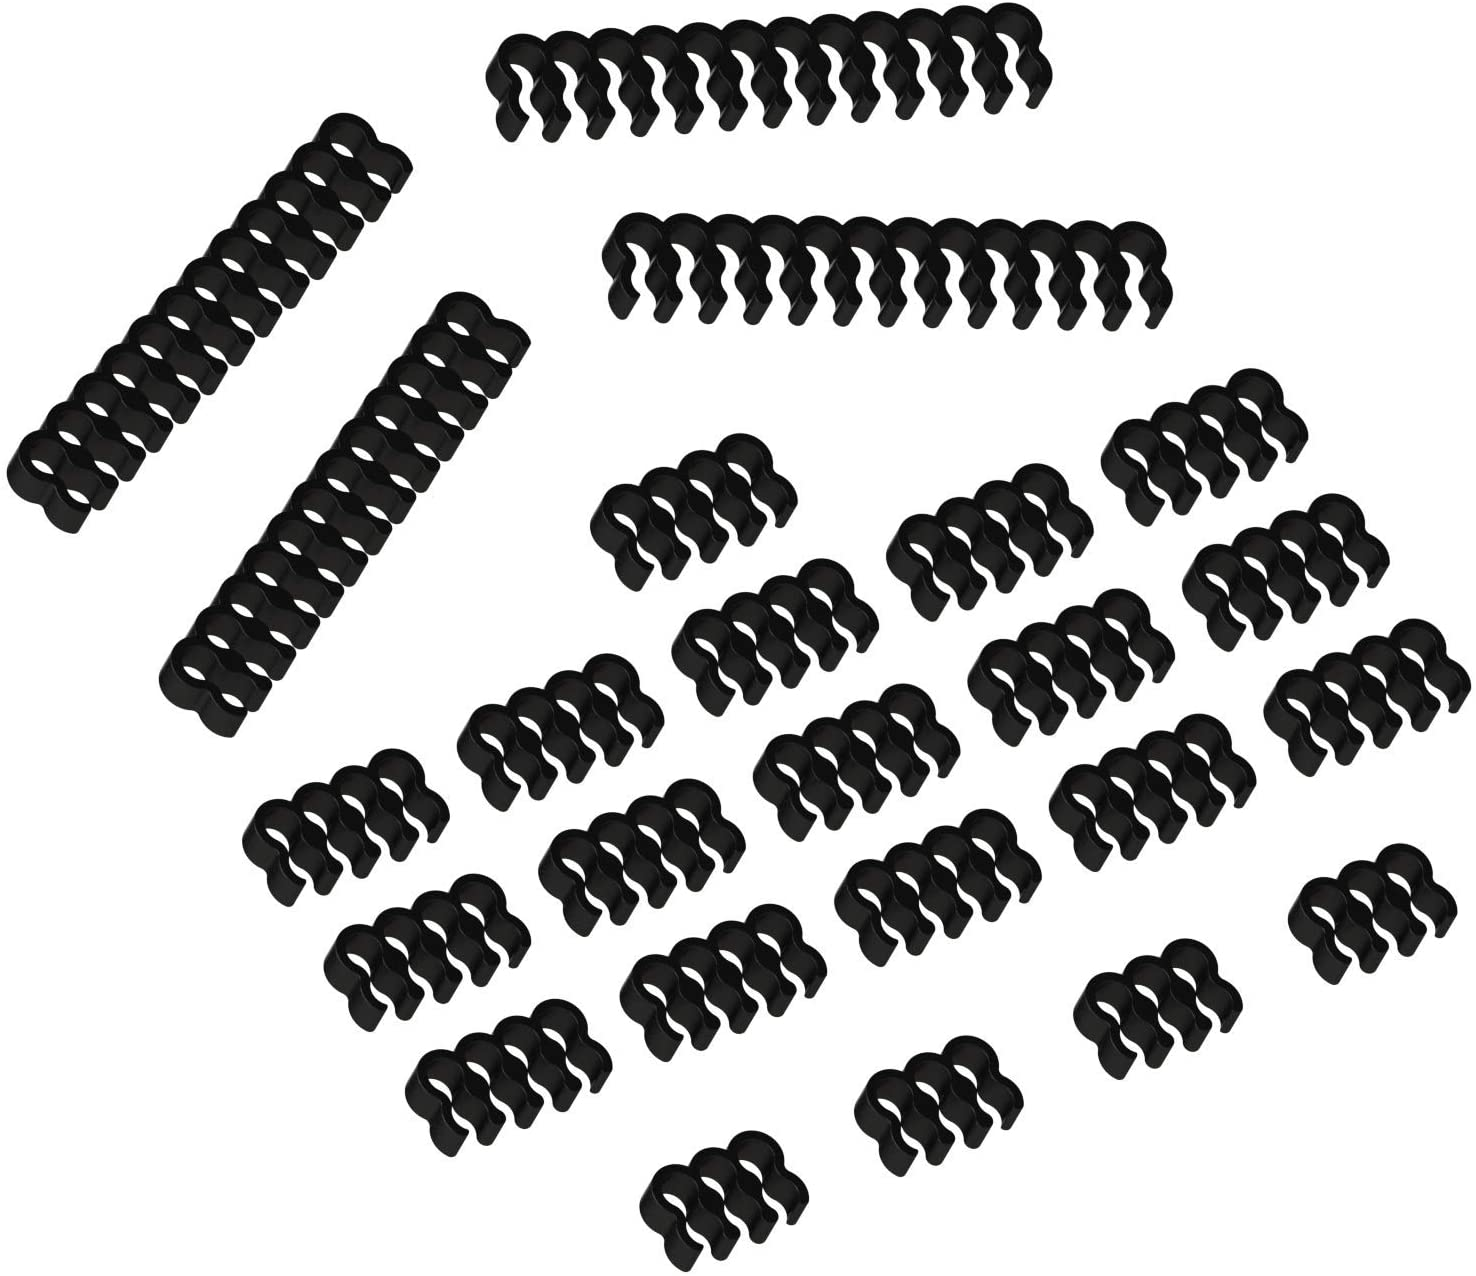 A series of black cable combs.